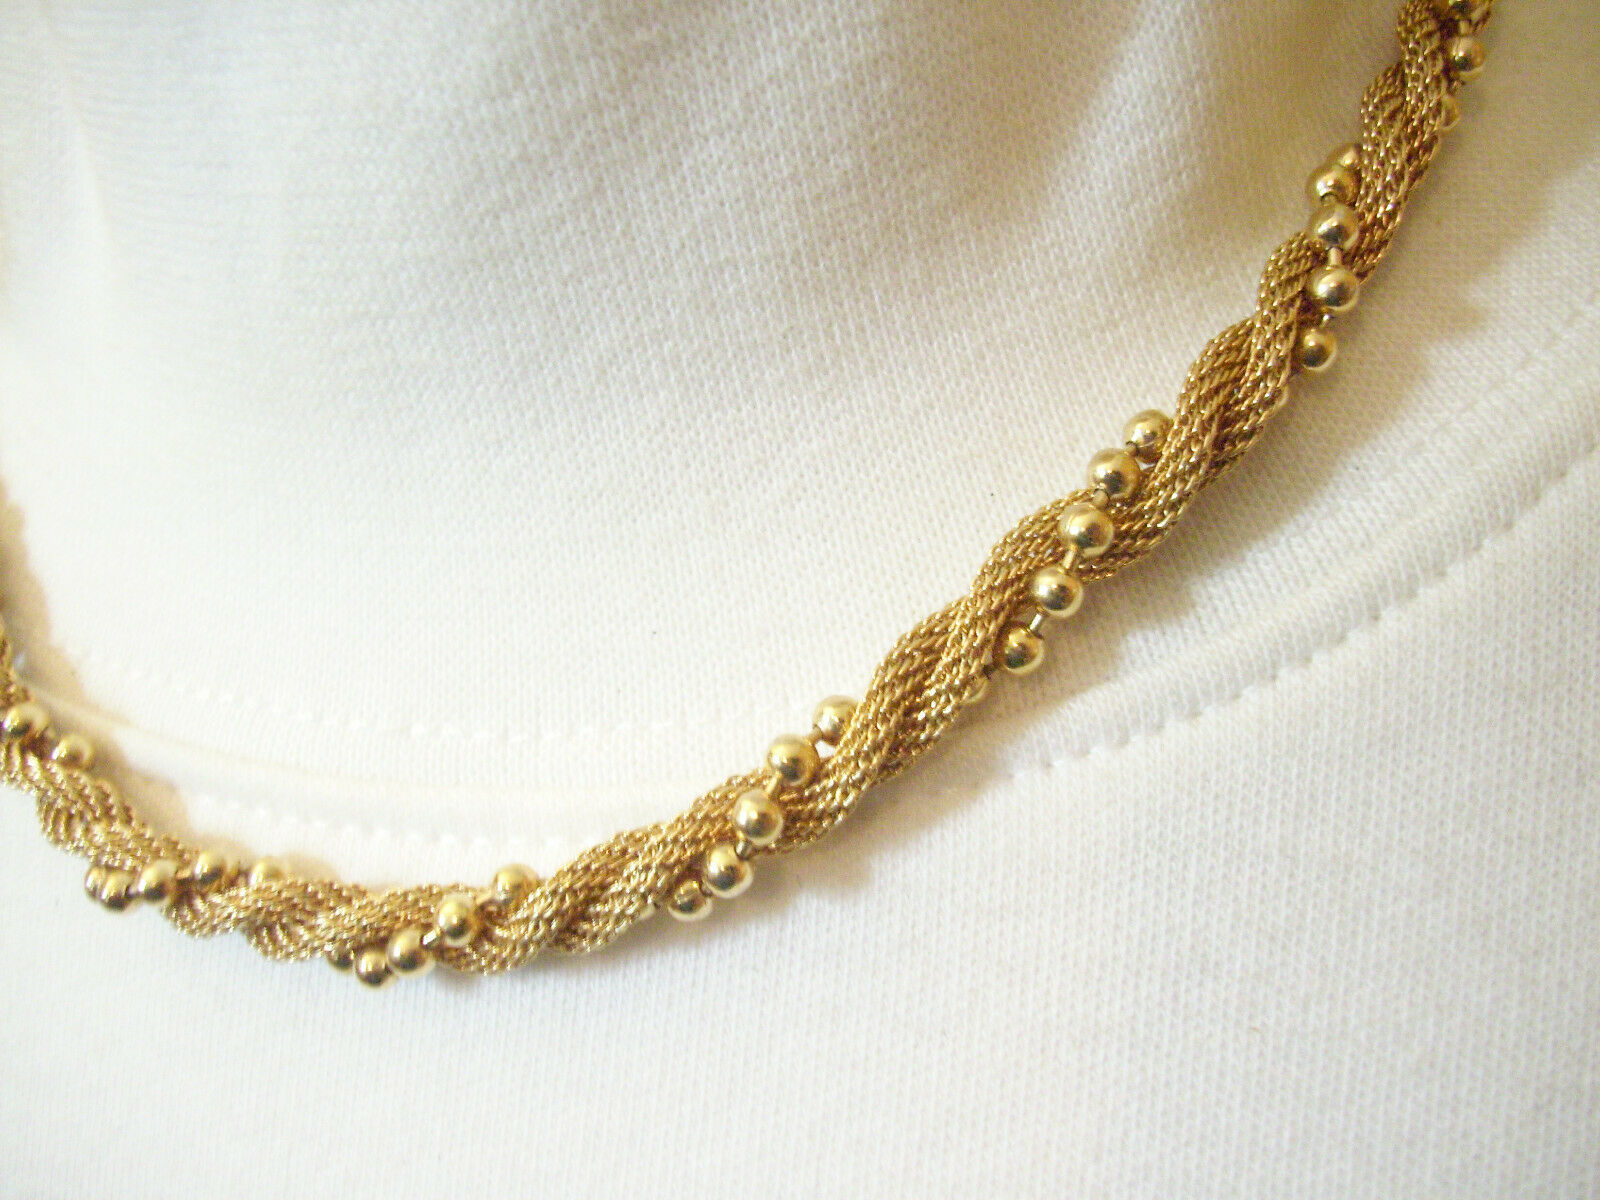 Primary image for Avon Gold Plate Mesh Twist Ball Chain Choker Necklace Elegant Classic